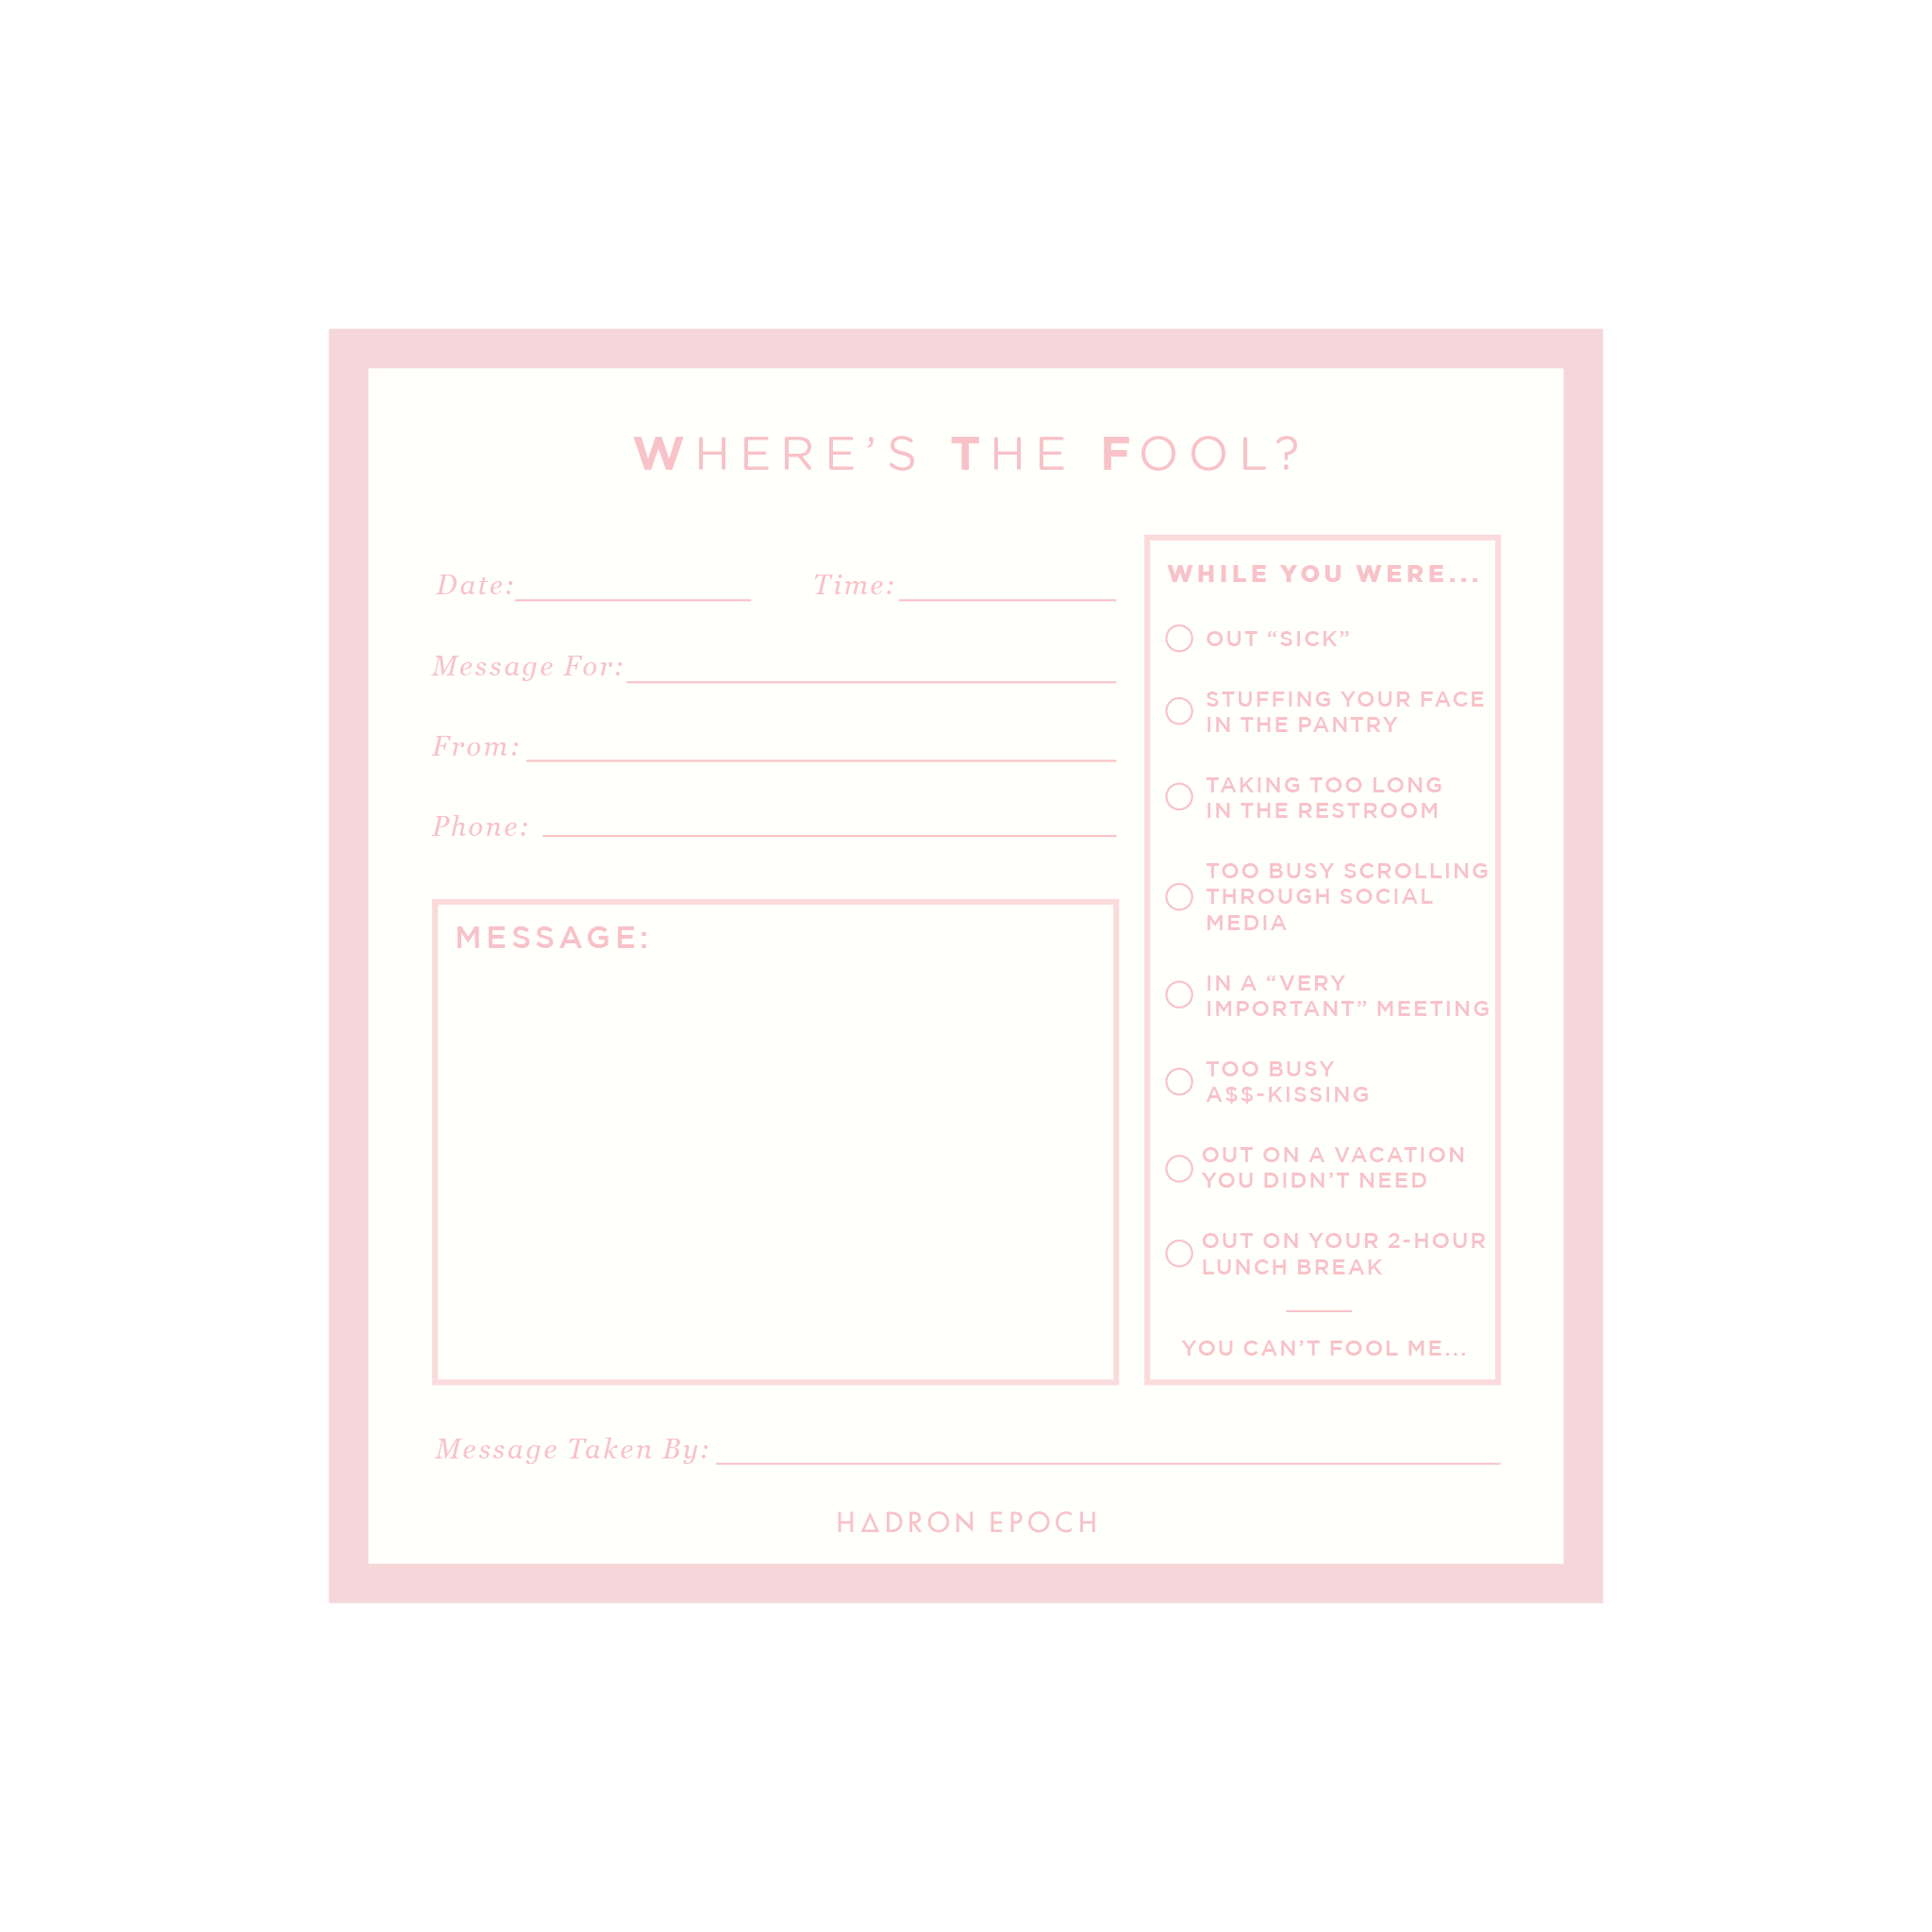 SMTWTFS Message Notepad Coral Pink - Hadron Epoch